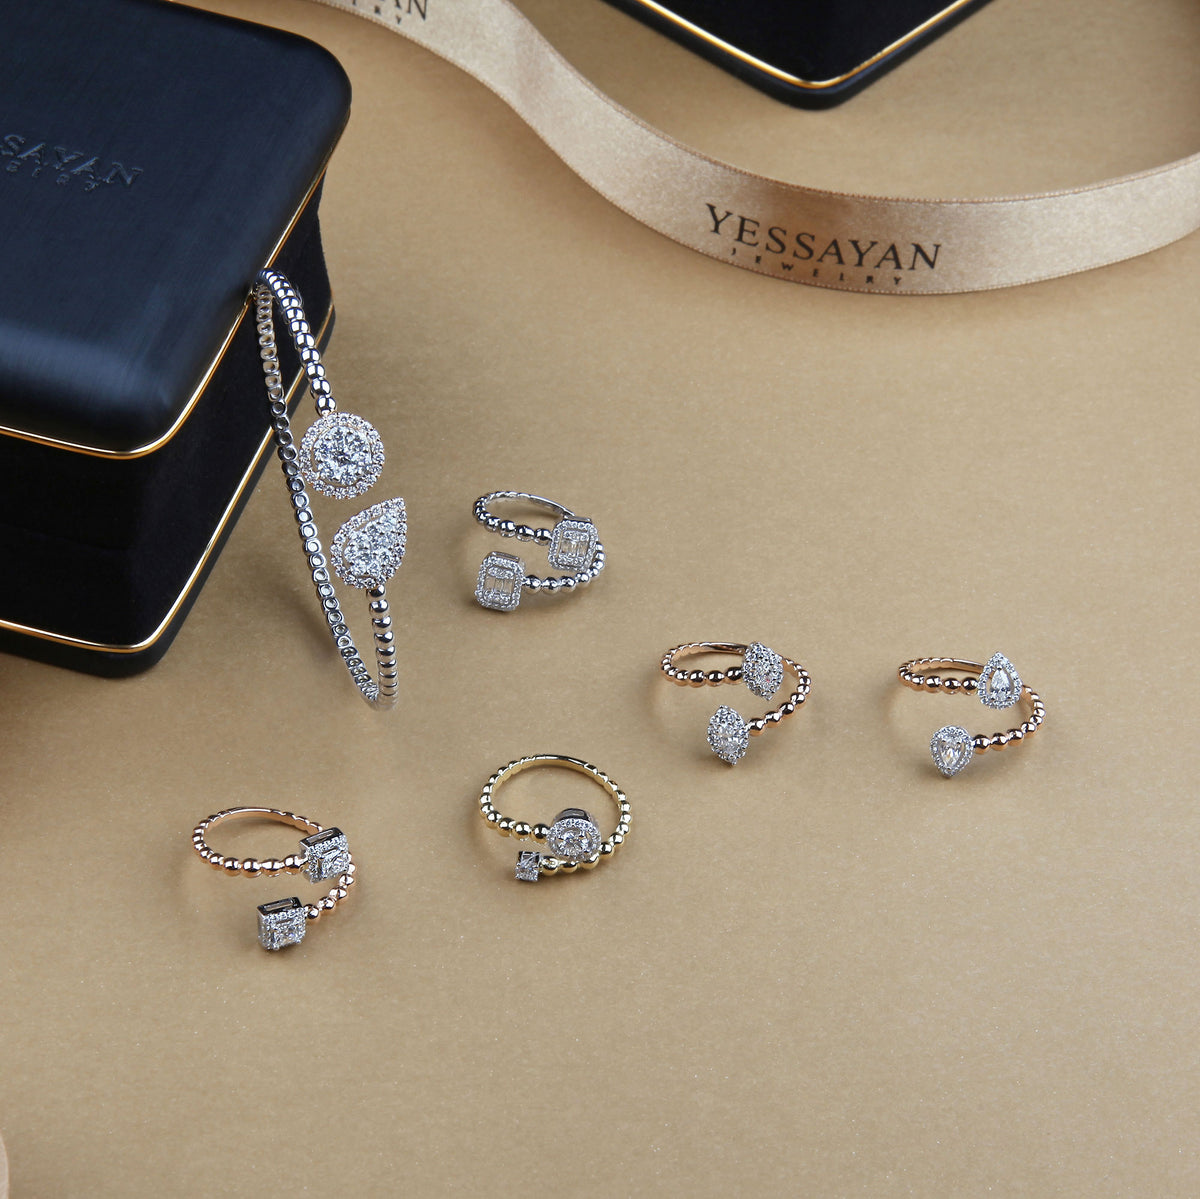 Diamond ring price in Saudi Arabia | Best jewelry stores in UAE